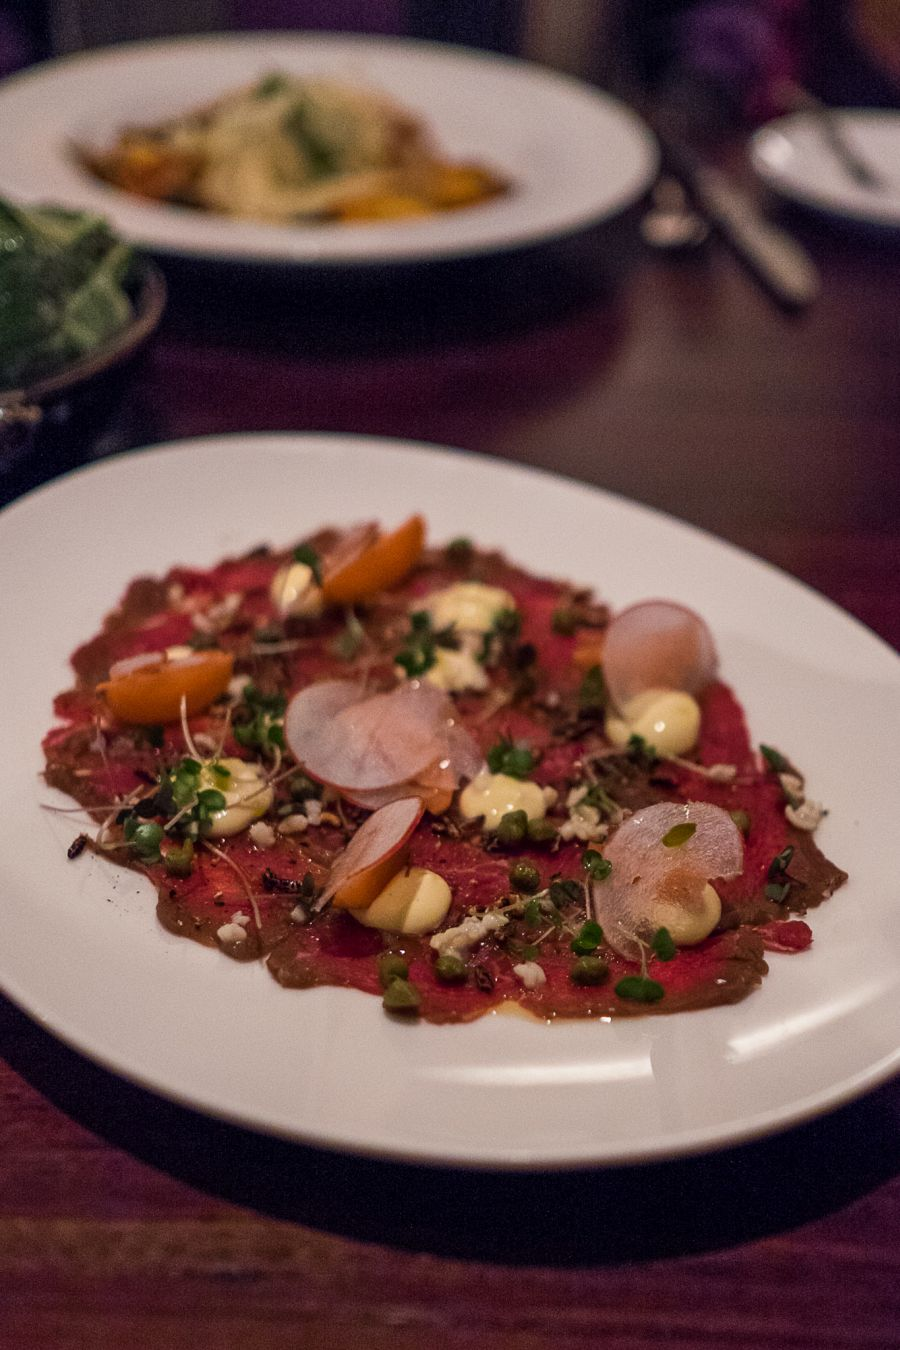 Beef carpaccio (AU$16) - pickled radish, grains, aioli